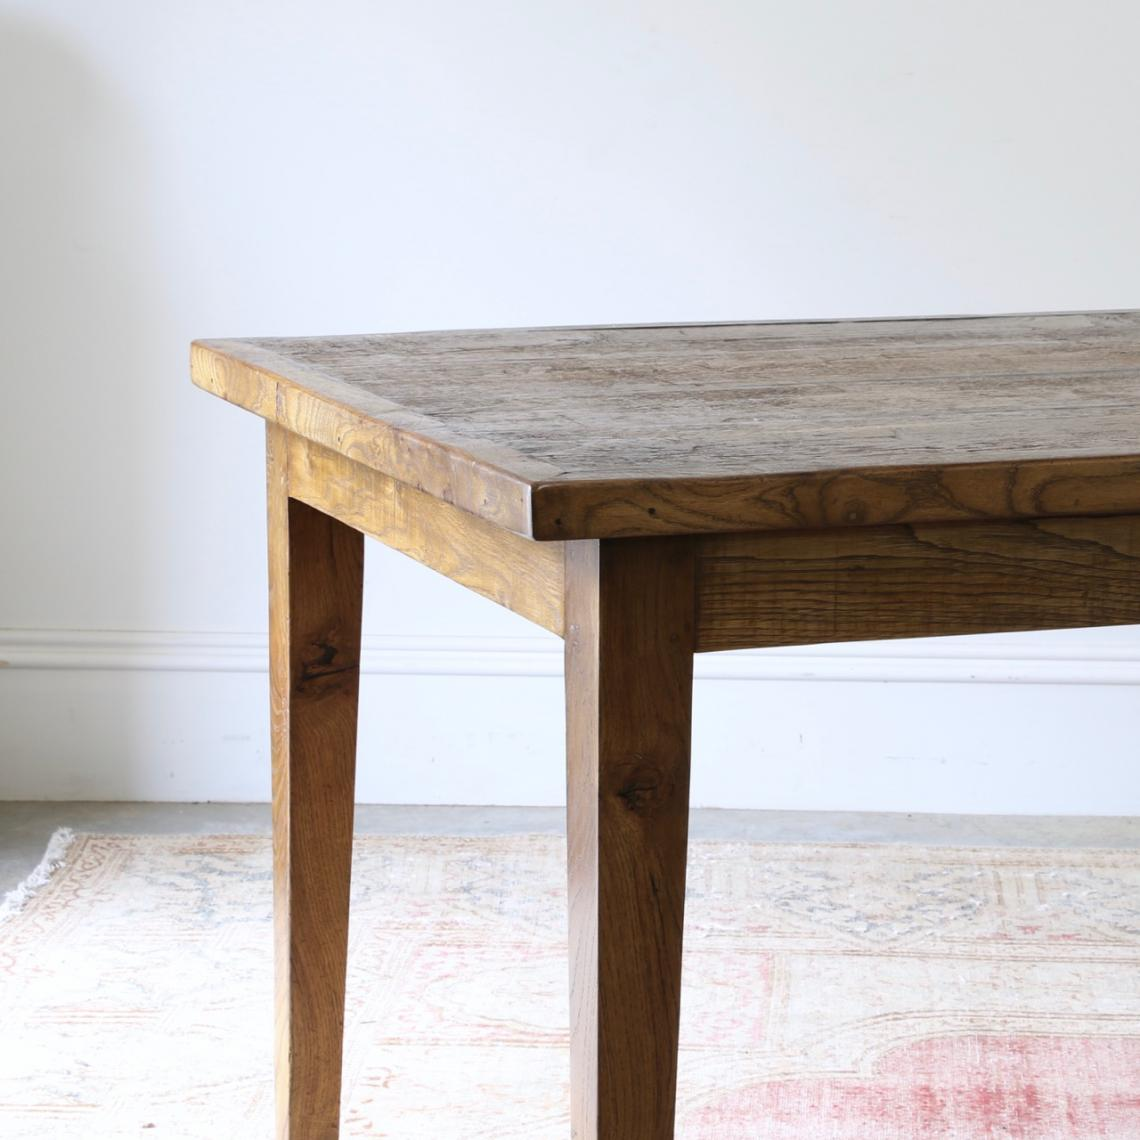 Oak Dining Table 2.7 metres